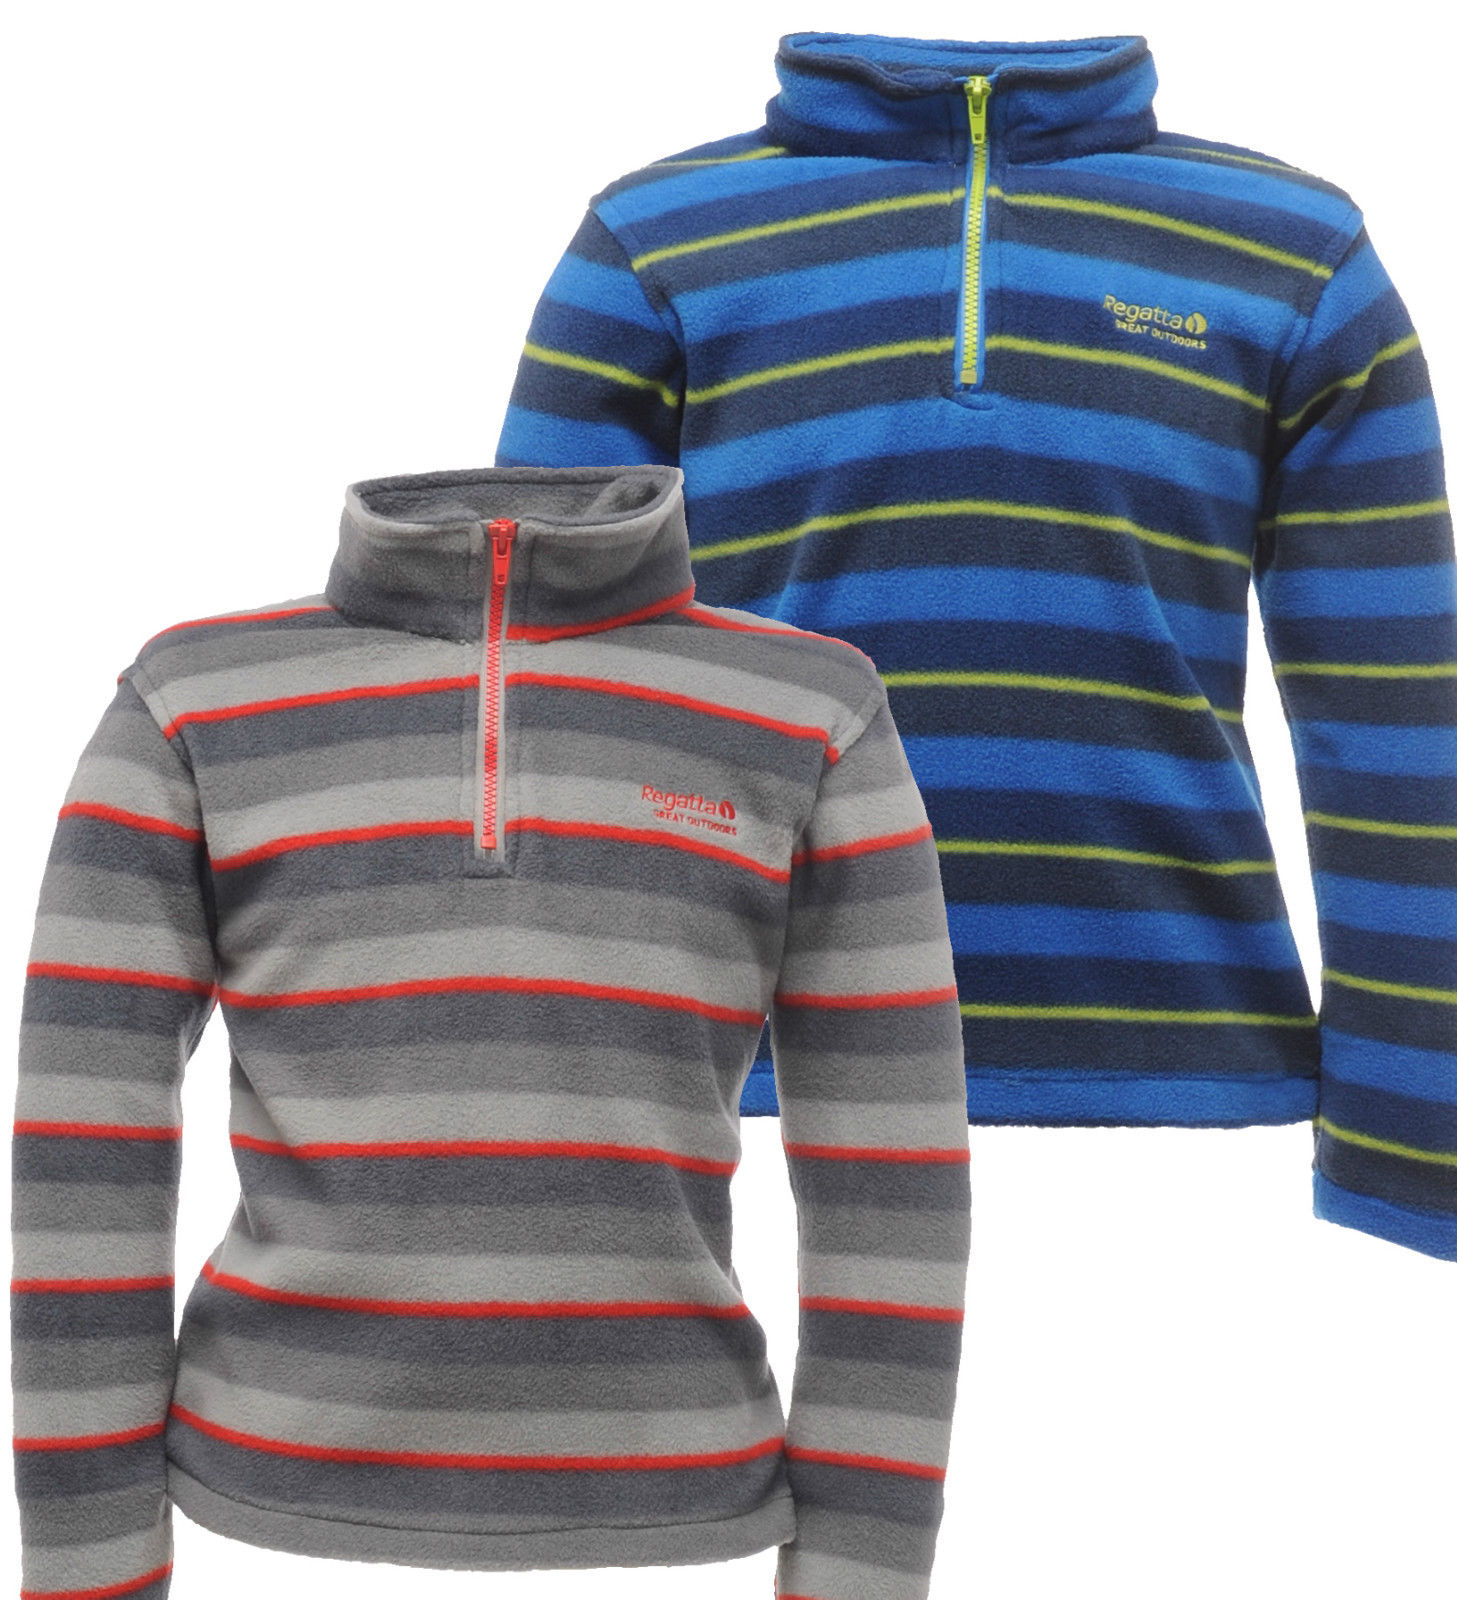 boys jumpers age 7-8 jumpers NTXARKW